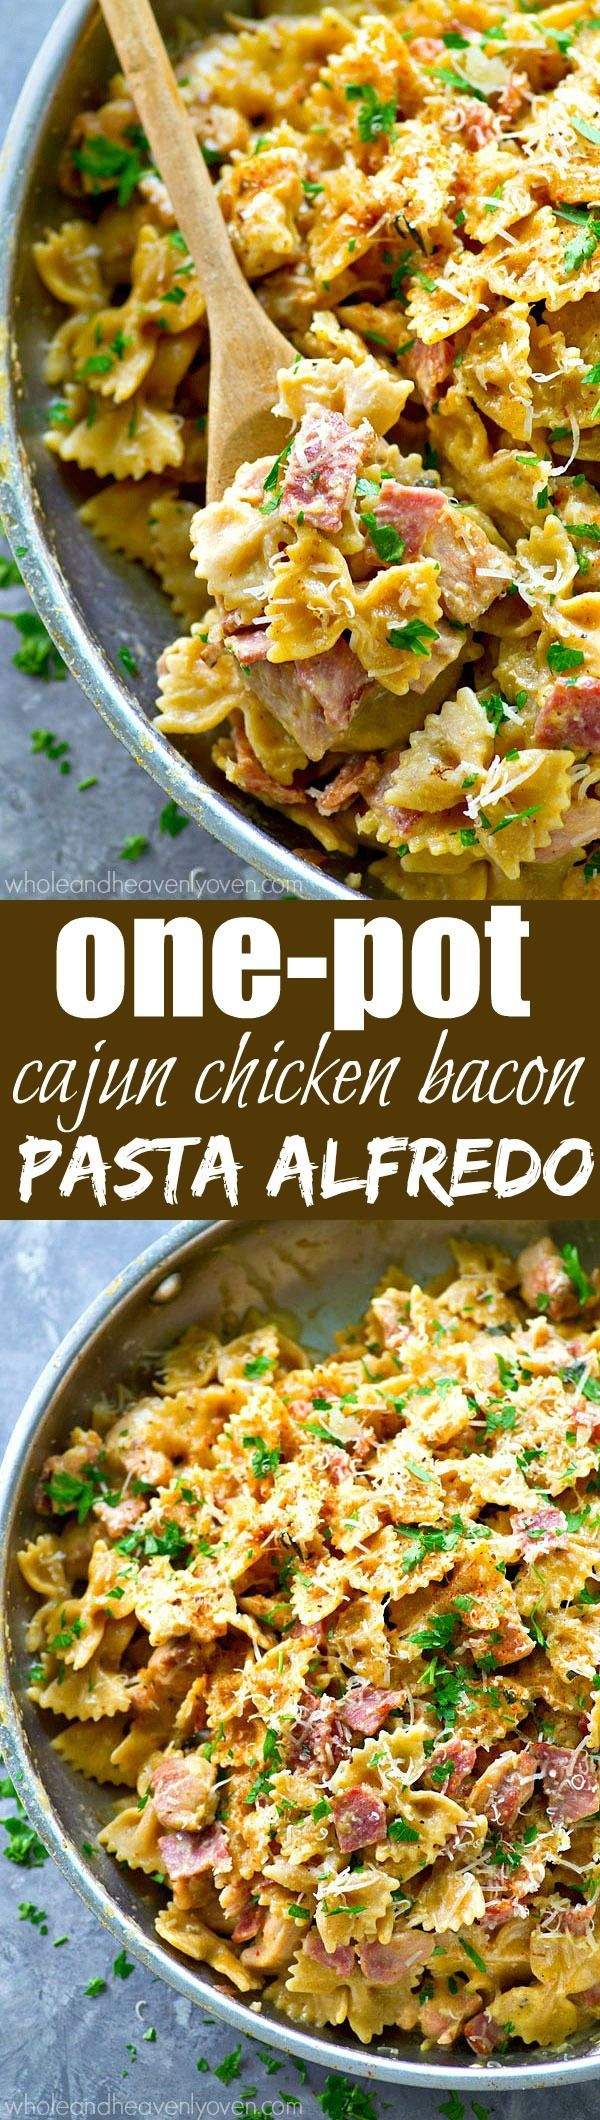 Ready for the ultimate one-pot dinner? This Cajun chicken pasta alfredo is unbelievably simple to throw together and absolutely the best comfort food.